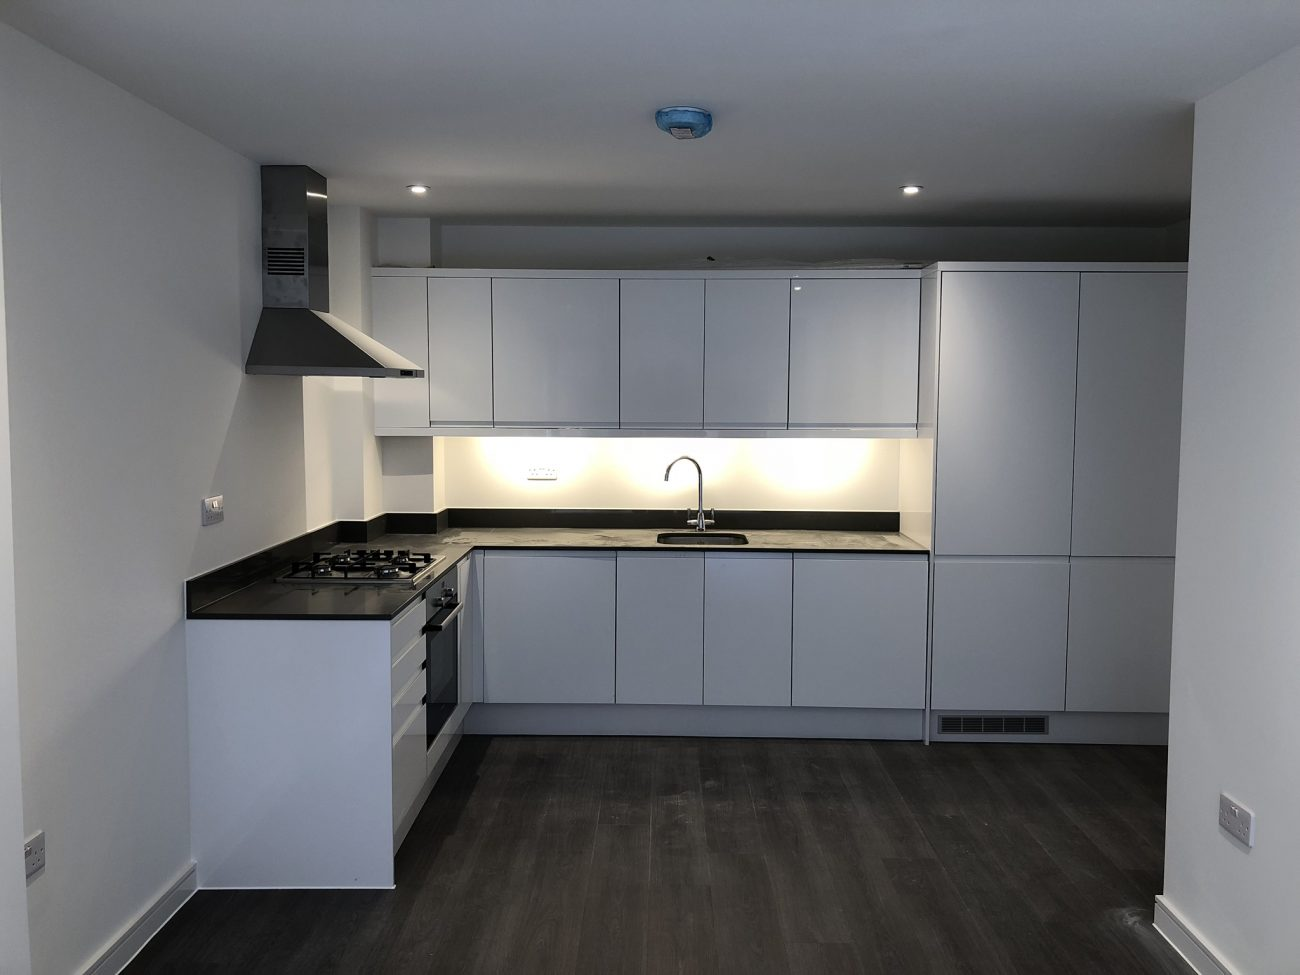 Block of 34 Luxury flats newly completed